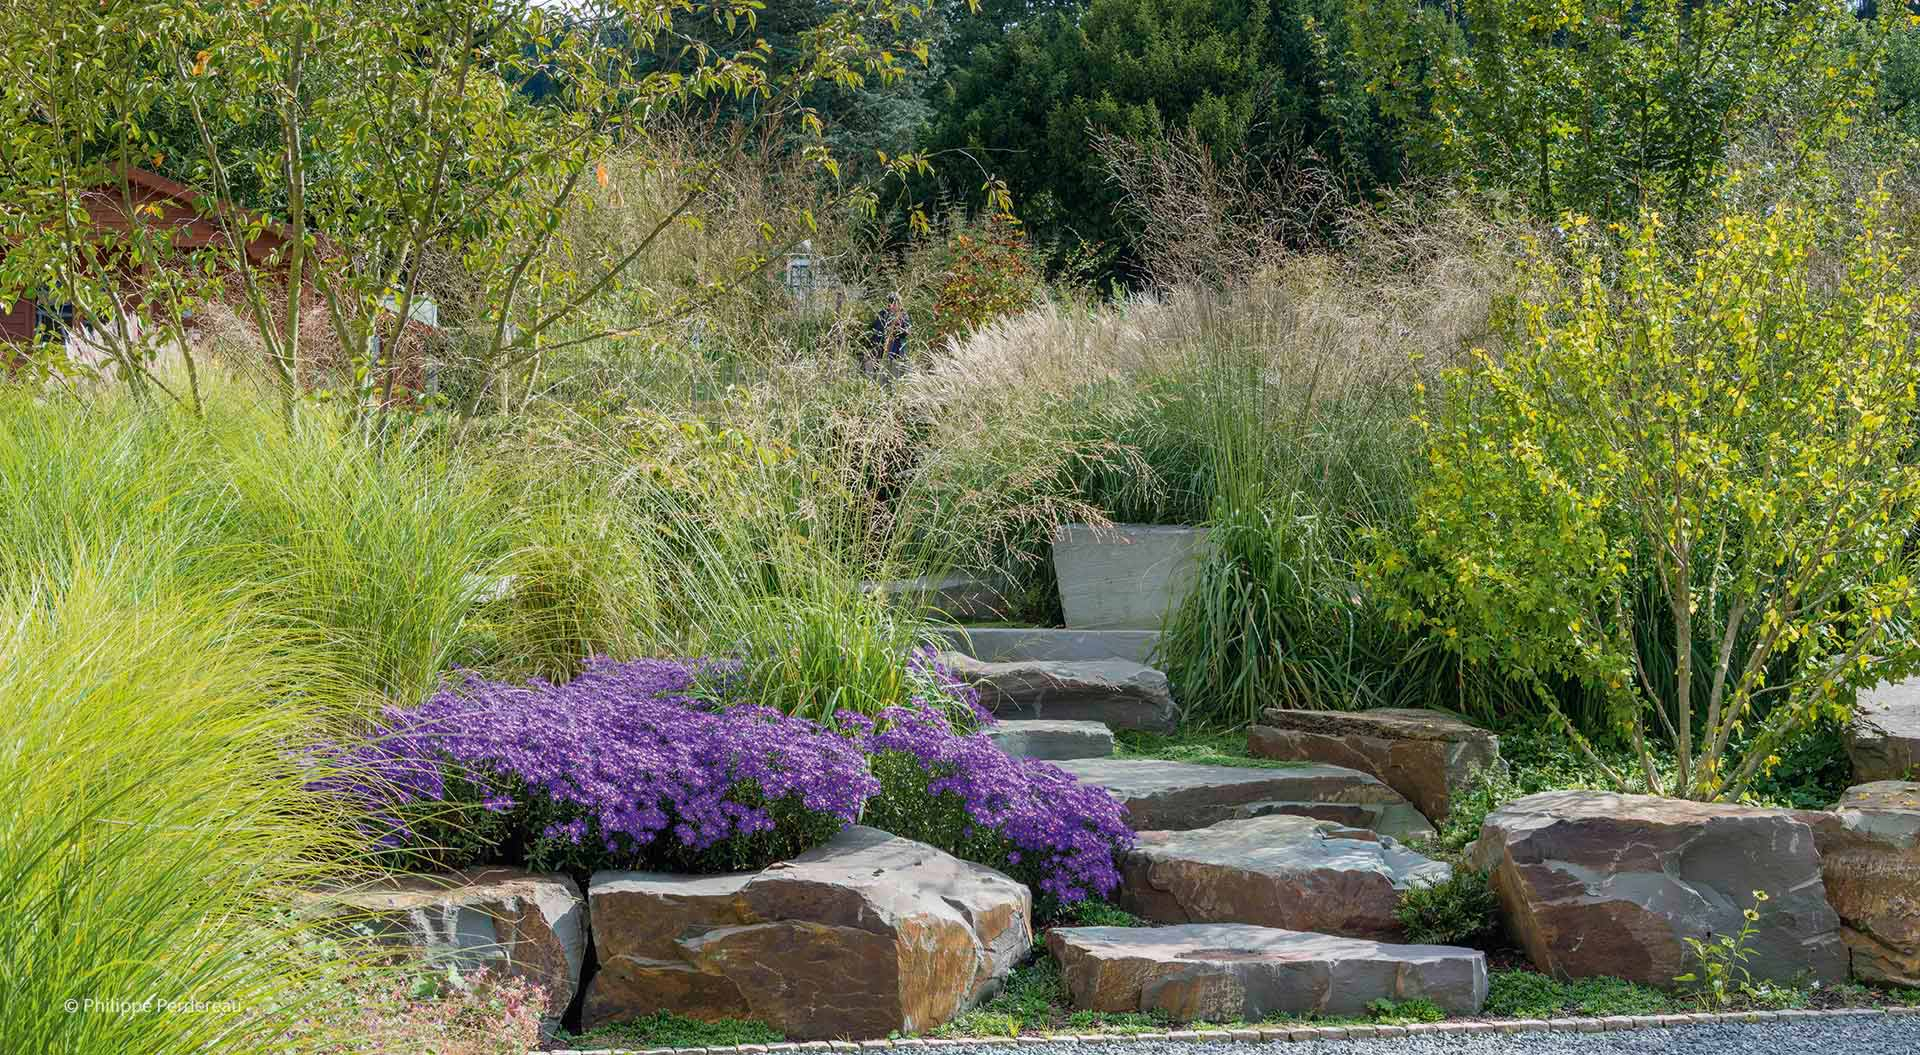 Big colourful garden with natural stone steps